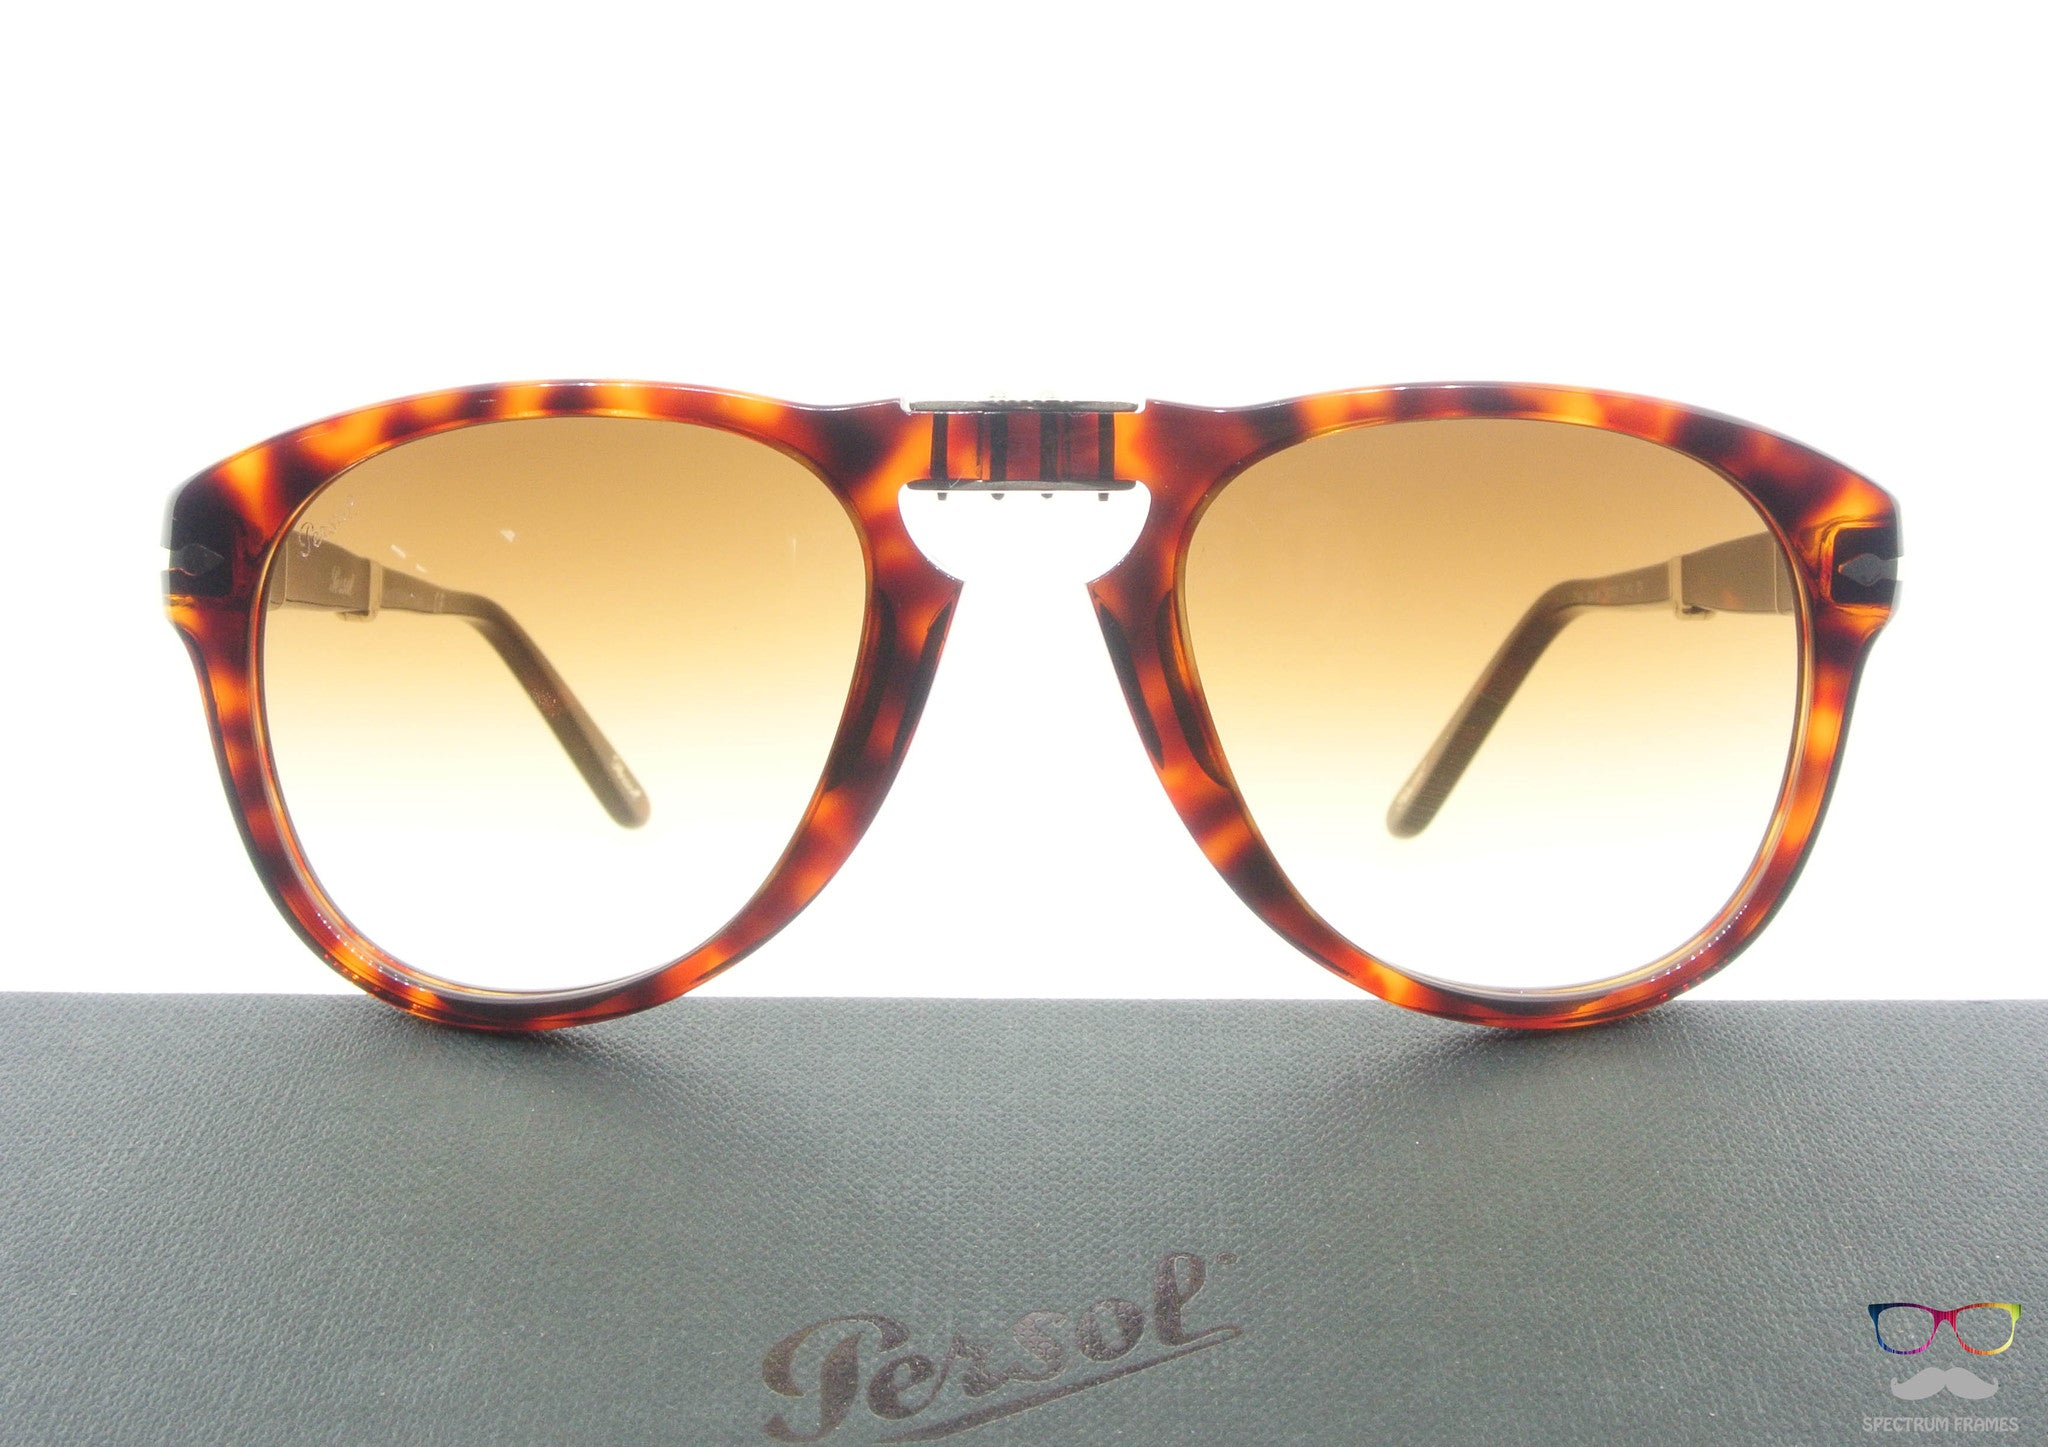 99f30415d44 ... Persol Folding Sunglasses 714 24 51 Havana with Brown Gradient Size 52  ...